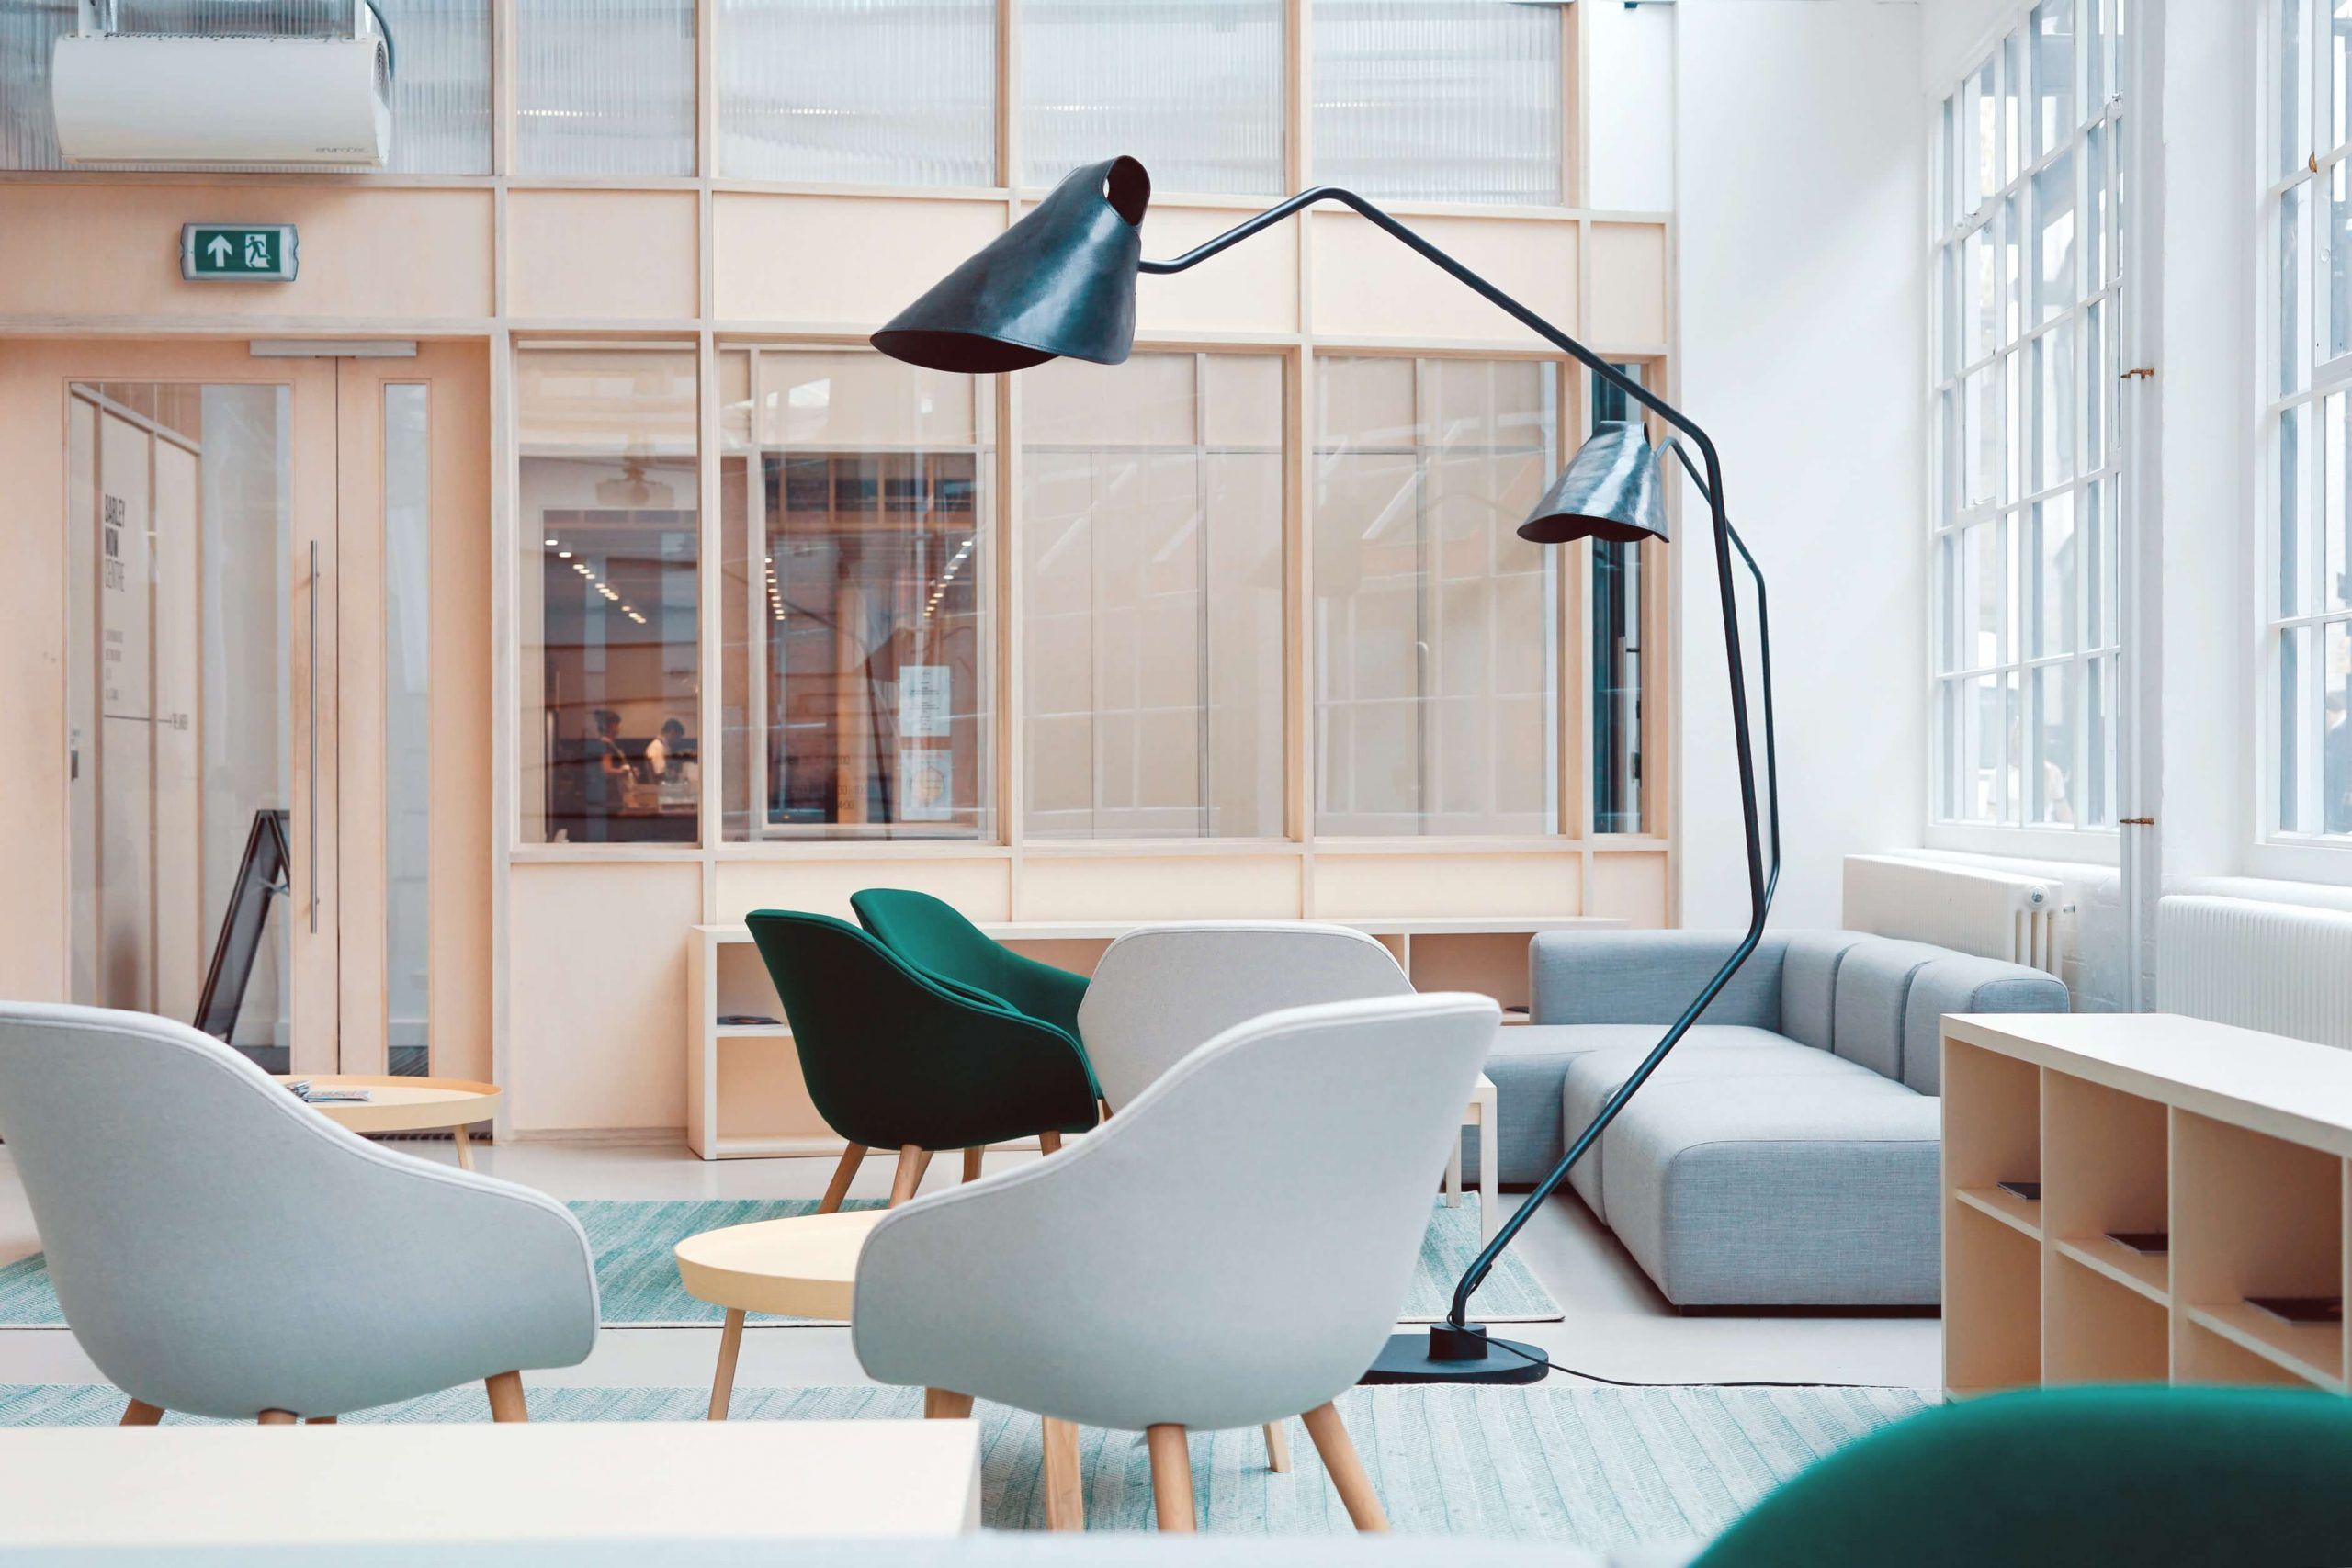 commercial interior with furniture in raleigh north carolina